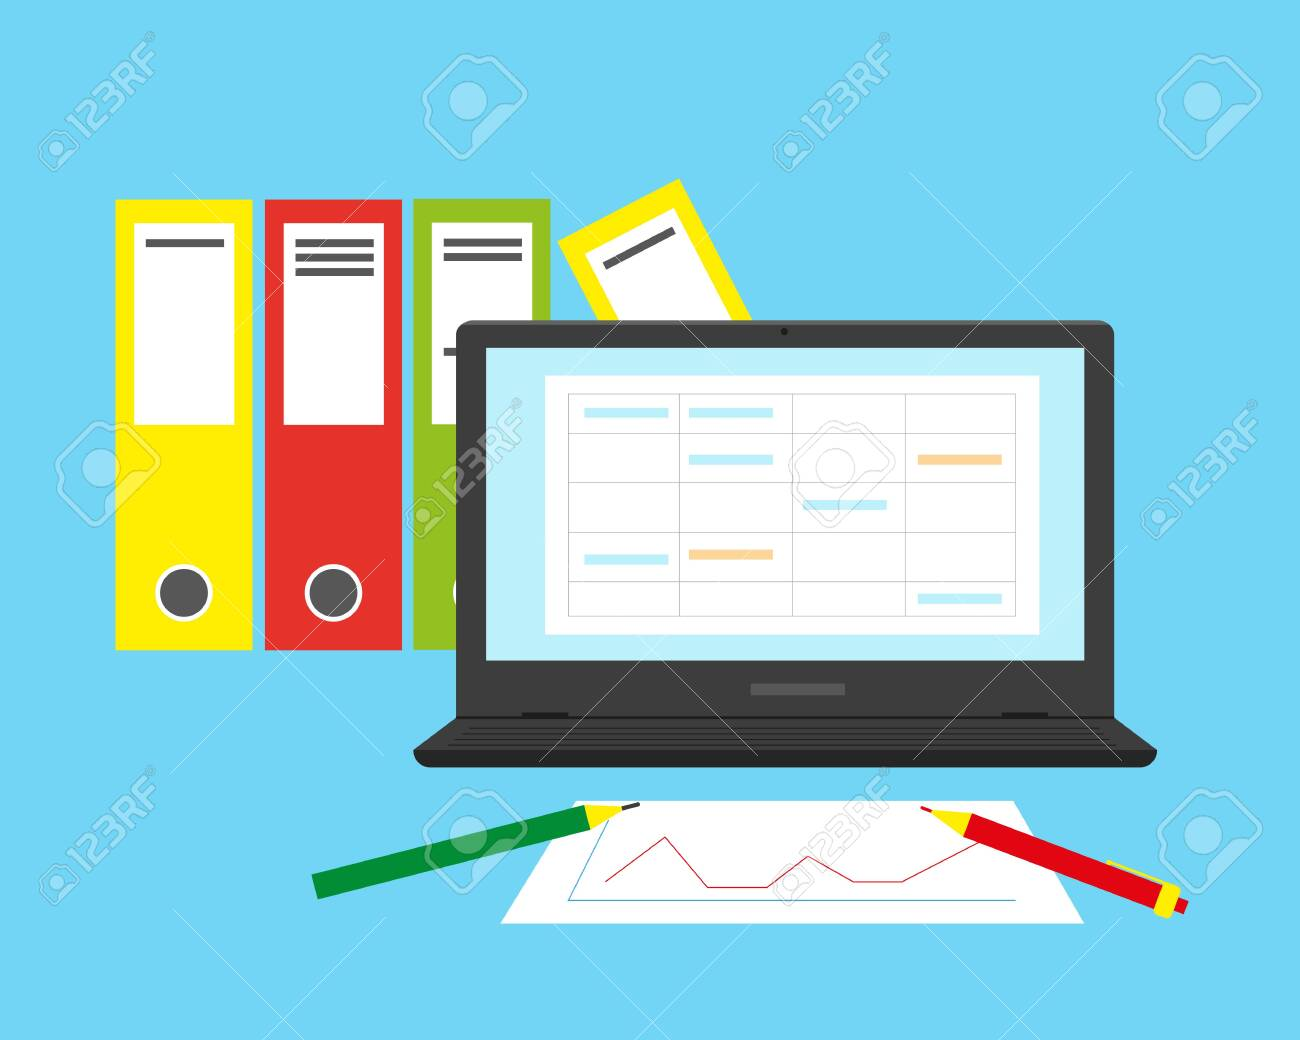 Accounting, financial analysis or business audit concept. Flat vector illustration. - 135040170